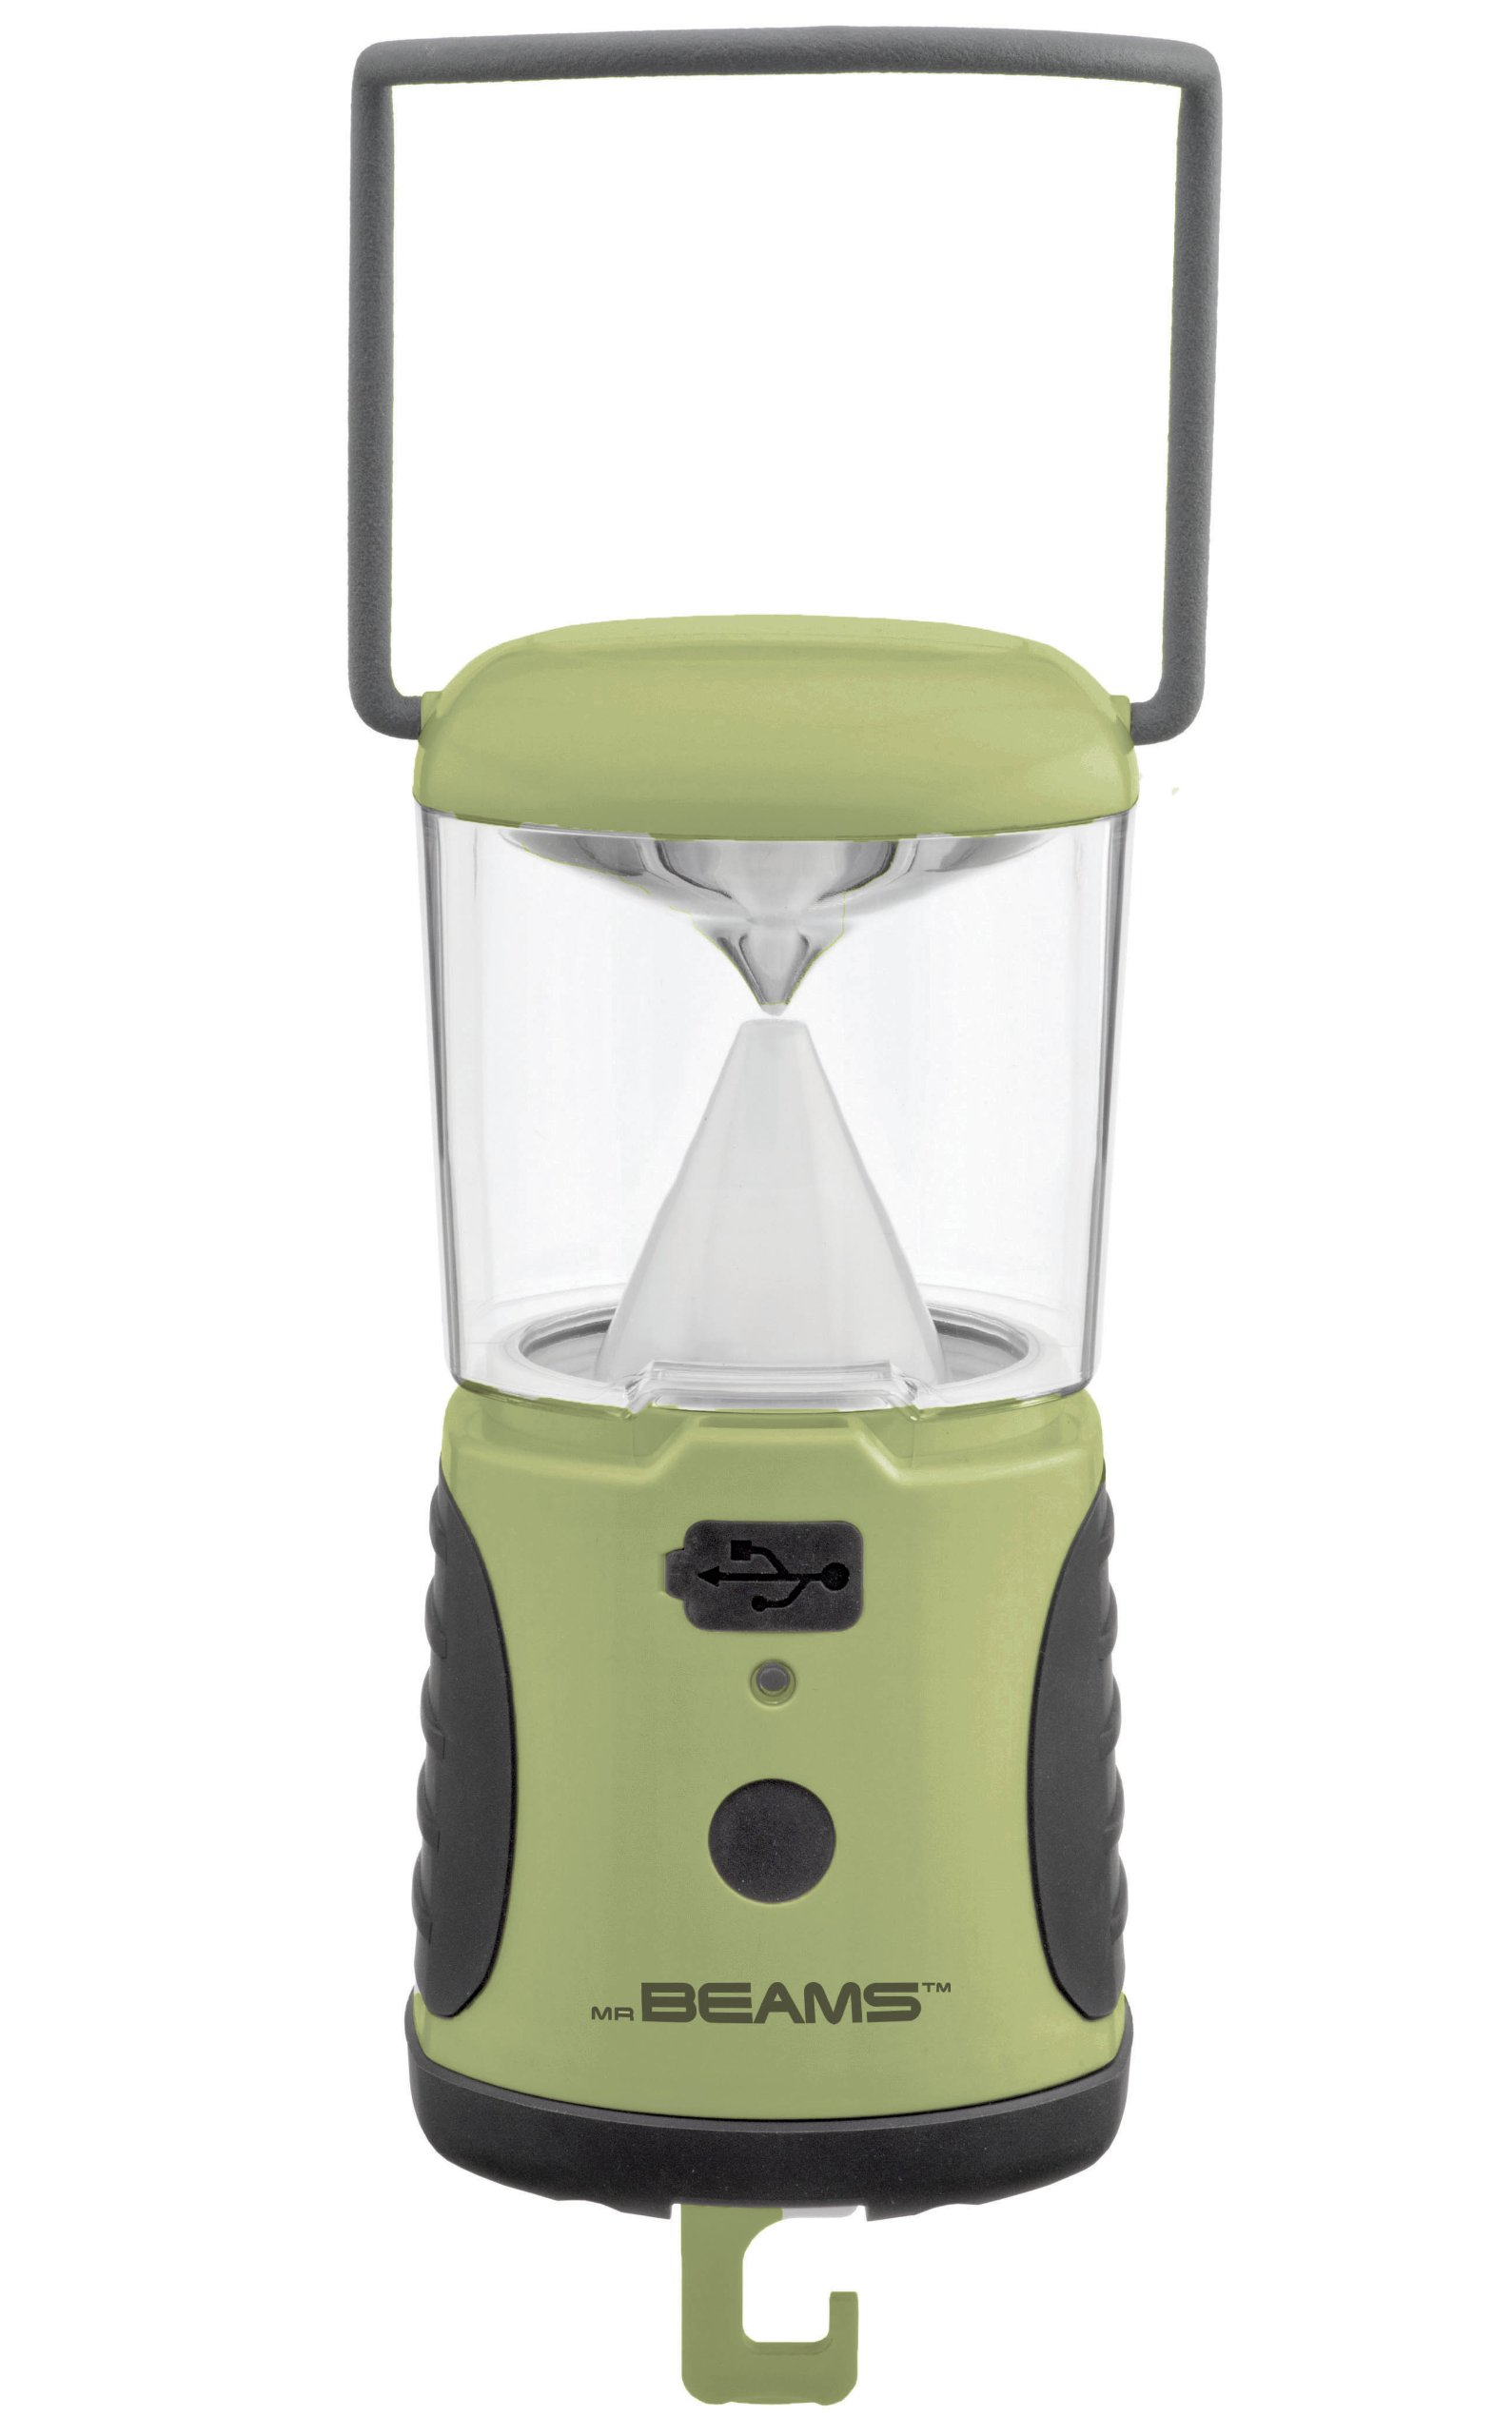 Mr. Beams MB472 UltraBright 260 Weatherproof Lumen LED Lantern with USB Port as a Backup Battery Charger, Green, 2-Pack by Mr. Beams (Image #2)